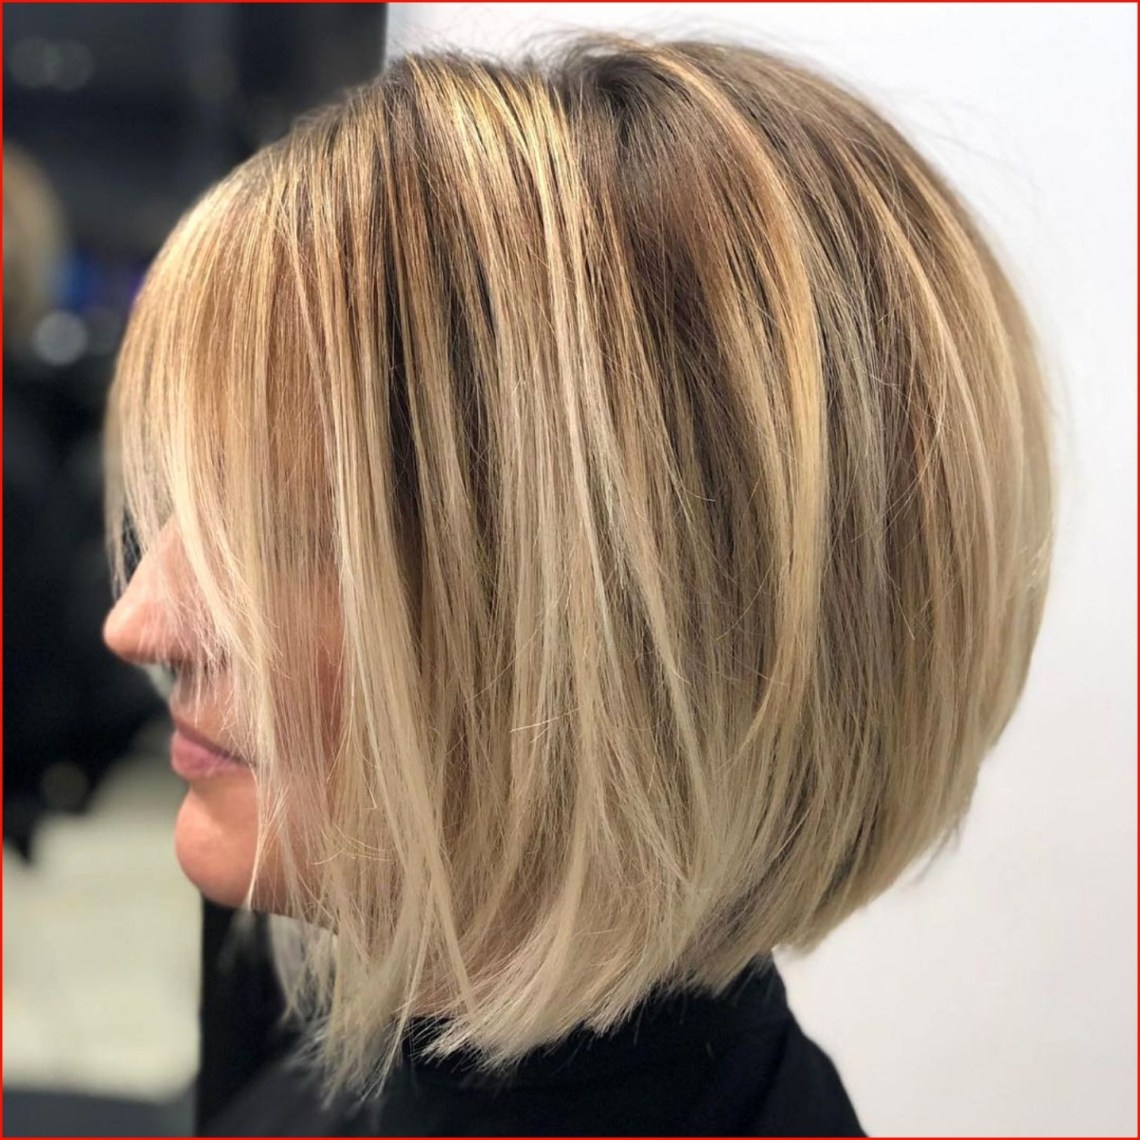 Cool Layered Wedge Hairstyle Photos Of Hairstyles Style 2021 10+ Adorable Medium Wedge Hairstyles